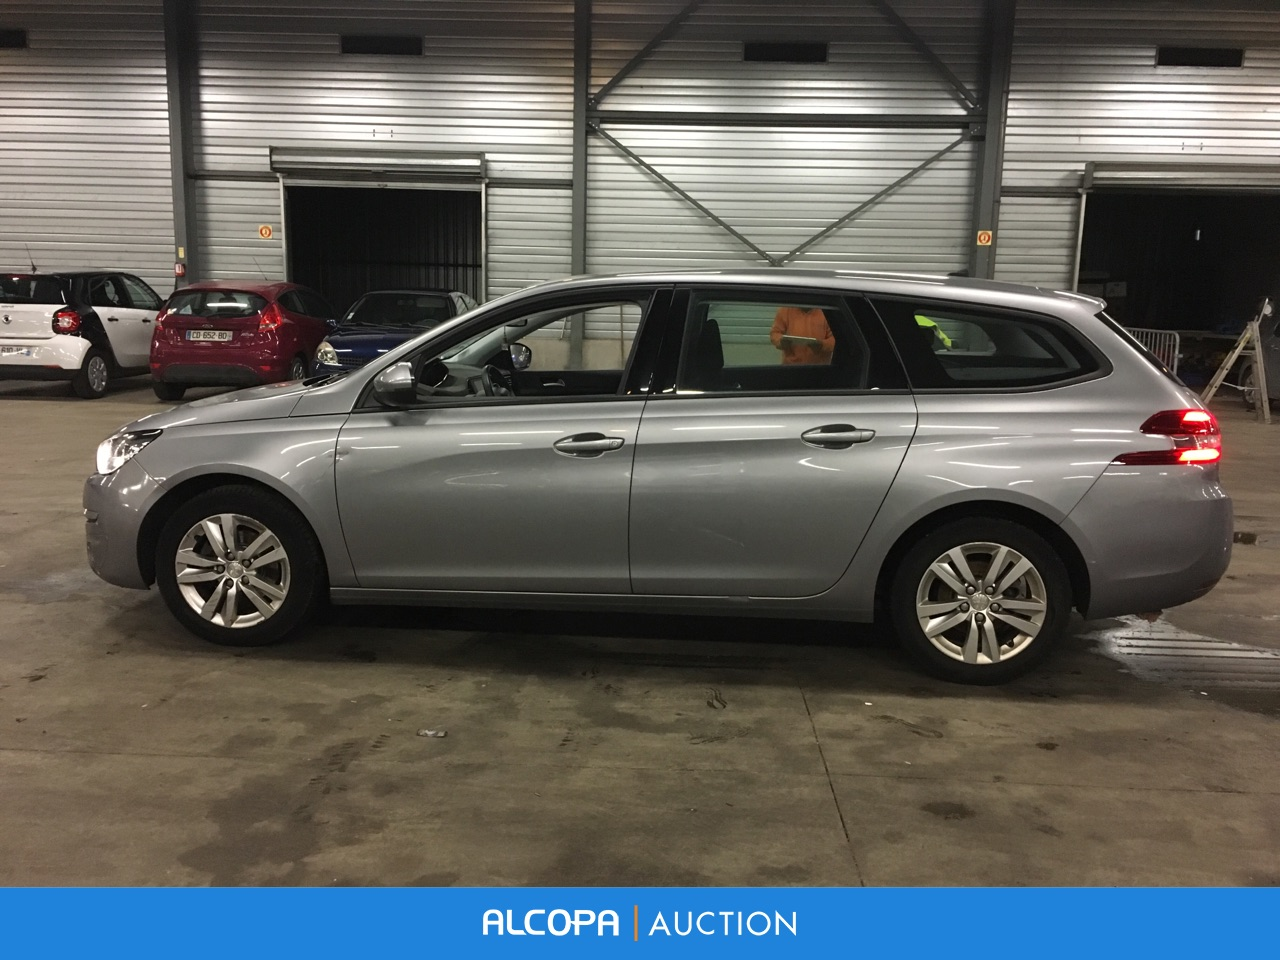 peugeot 308 sw business 308 sw 1 6 bluehdi 100ch s s bvm5 active business nancy alcopa auction. Black Bedroom Furniture Sets. Home Design Ideas